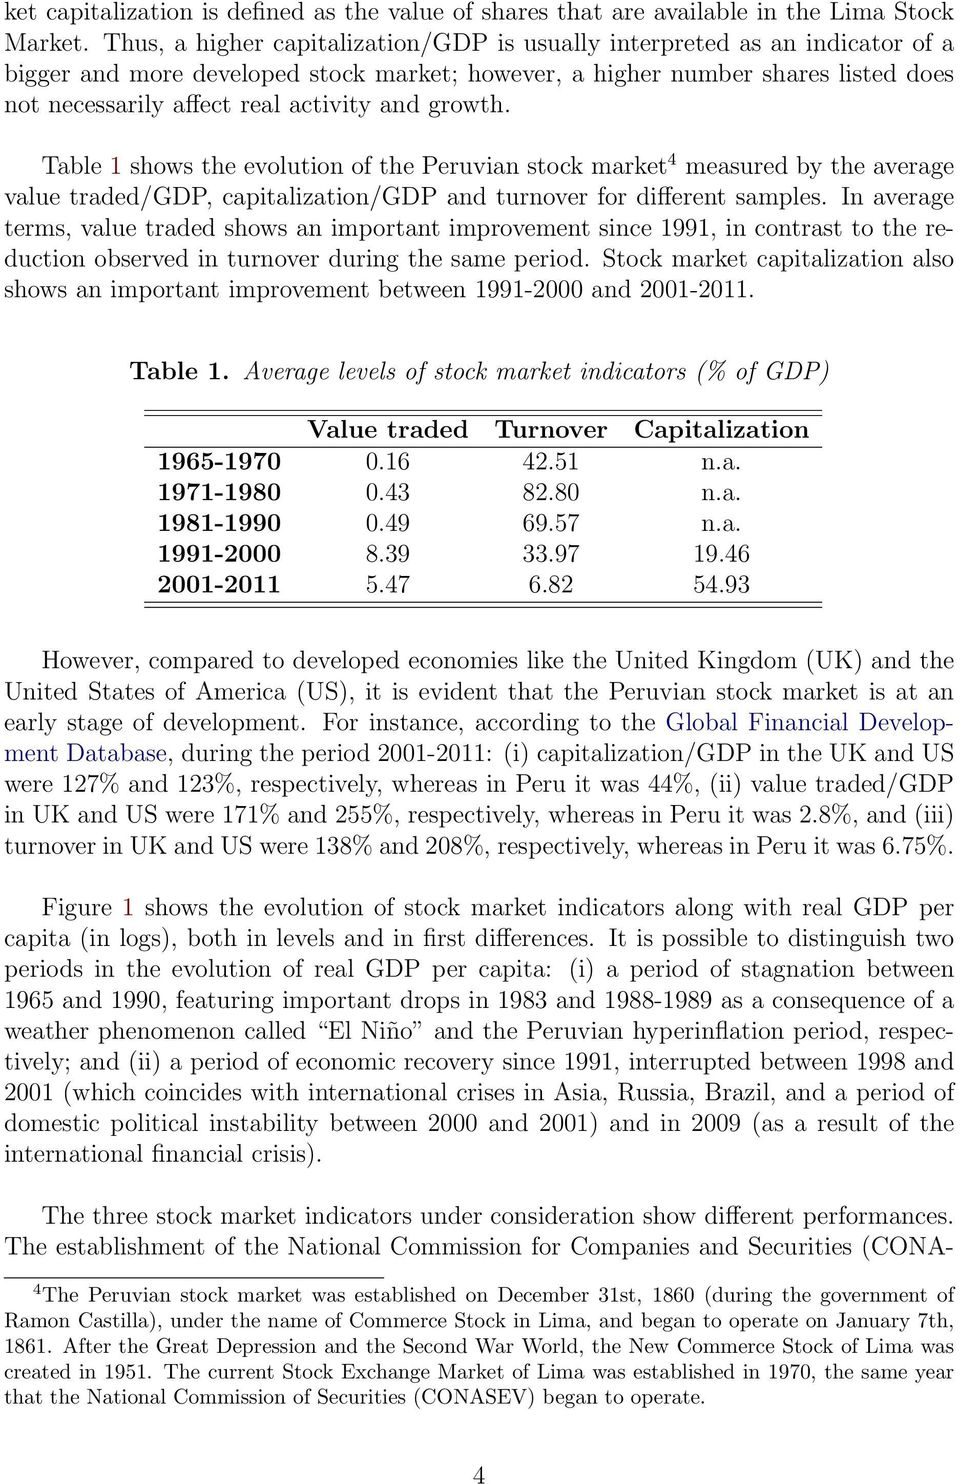 and growth. Table 1 shows the evolution of the Peruvian stock market 4 measured by the average value traded/gdp, capitalization/gdp and turnover for different samples.